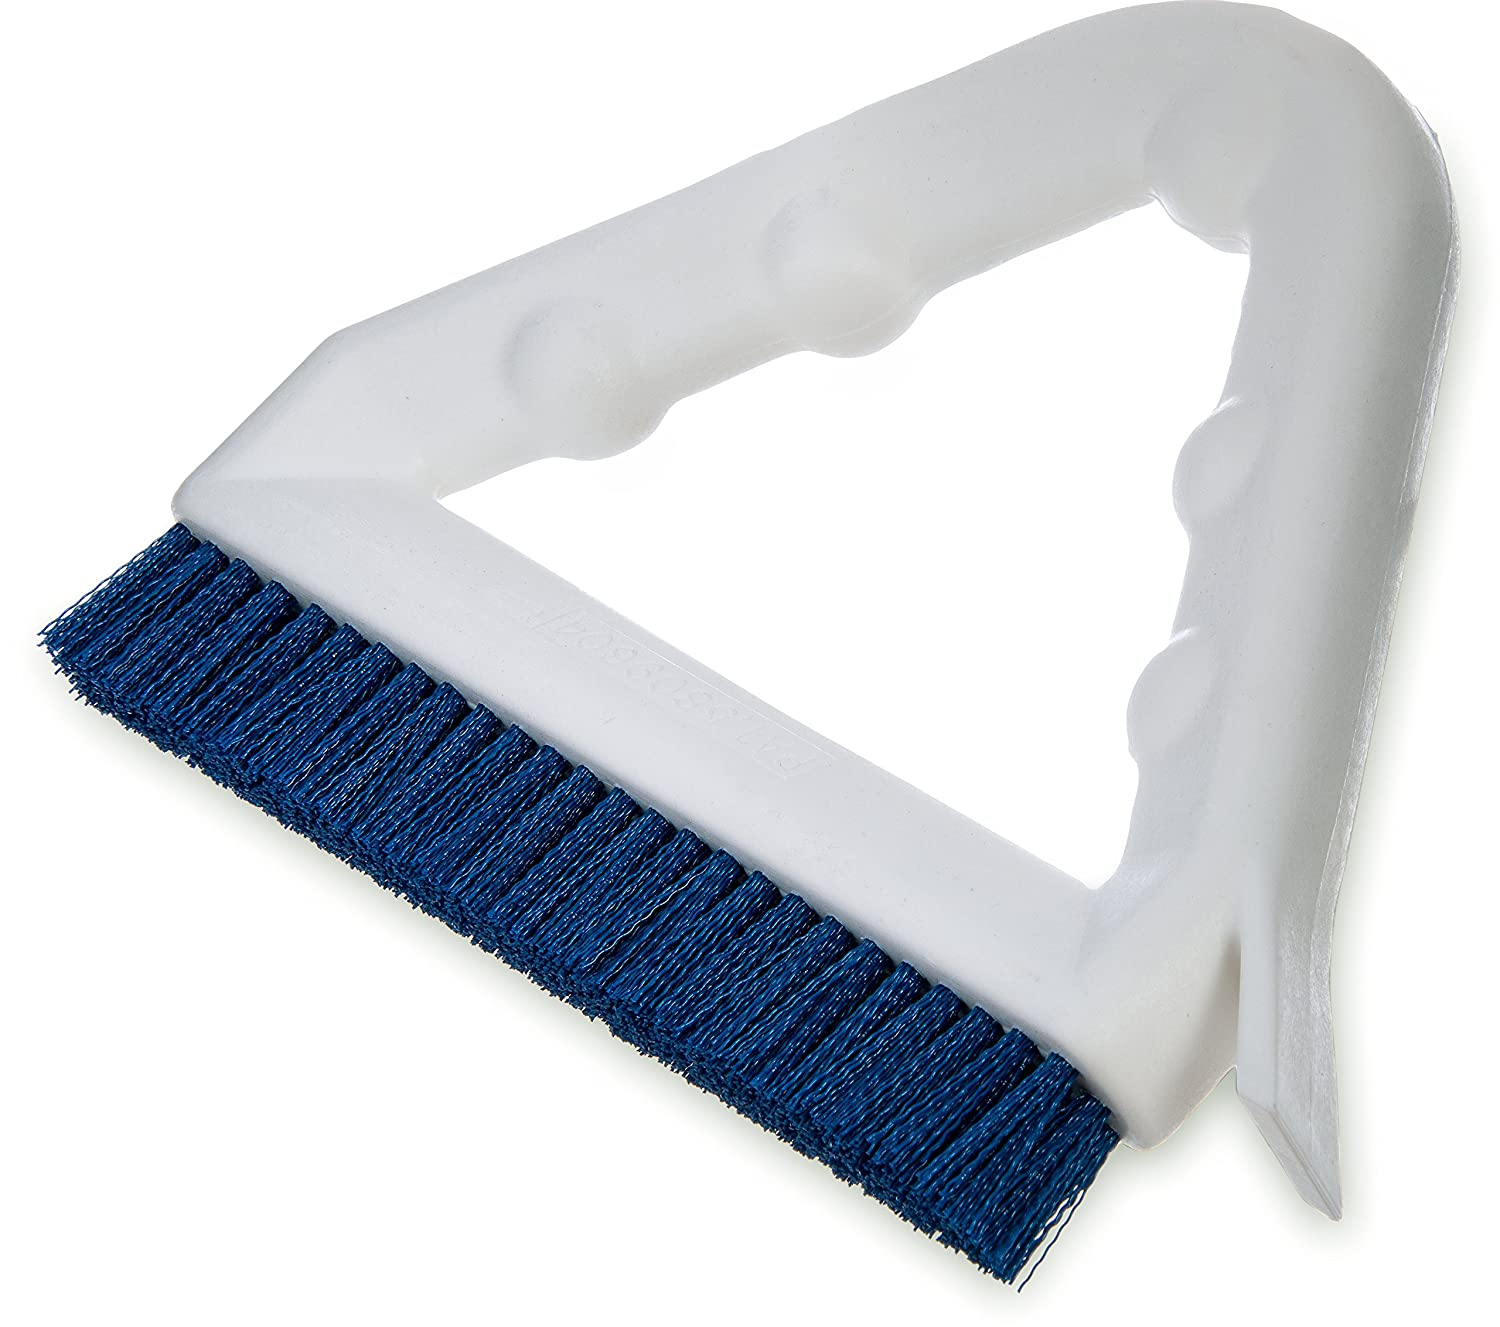 "Carlisle 4132314 Sparta Tile and Grout Brush with Scraper, 9"", Blue"